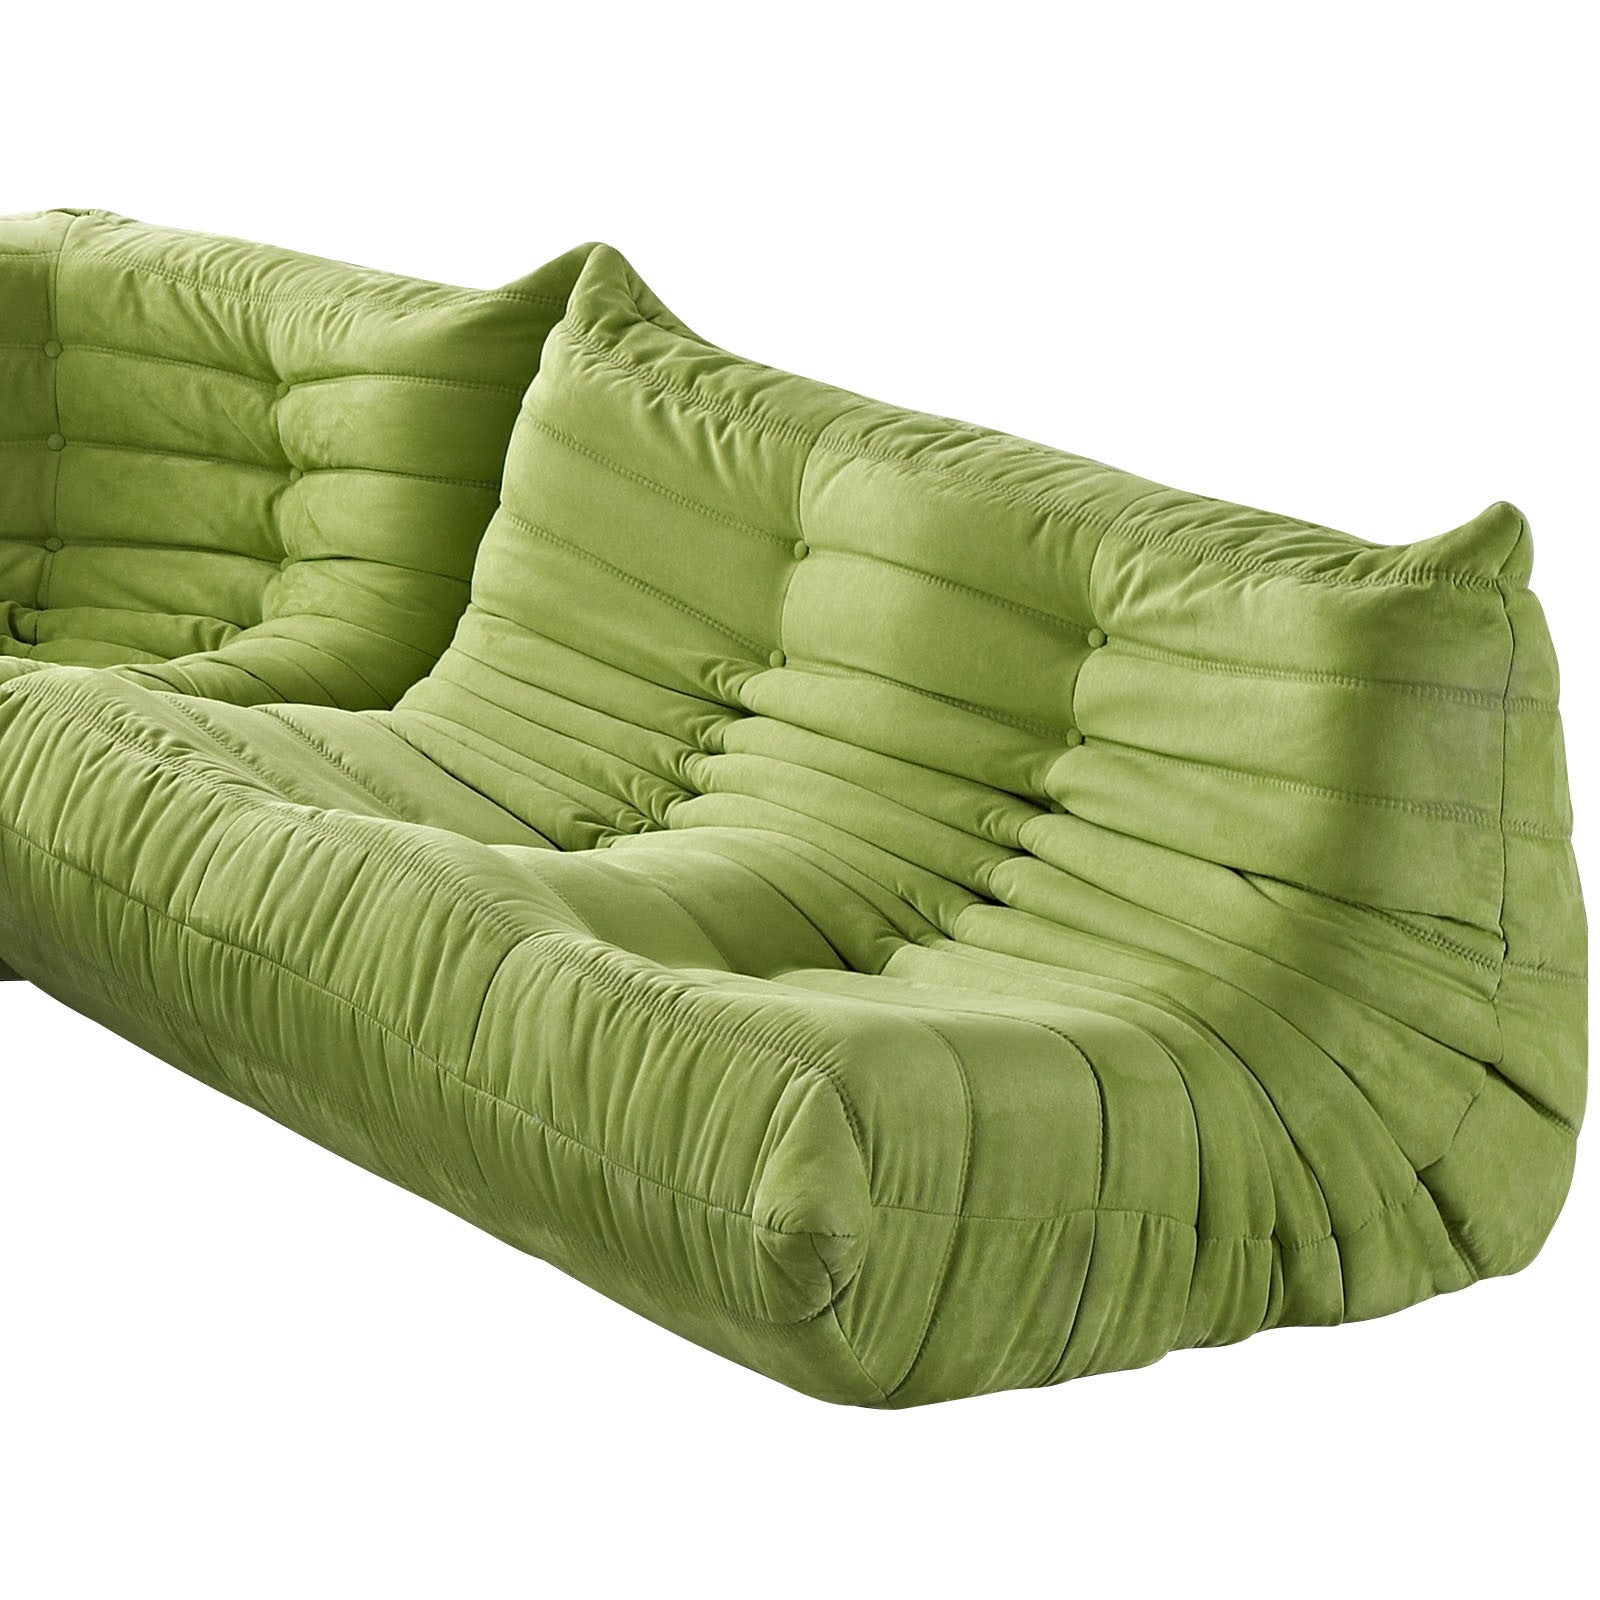 Modular Pillow Loveseat Green